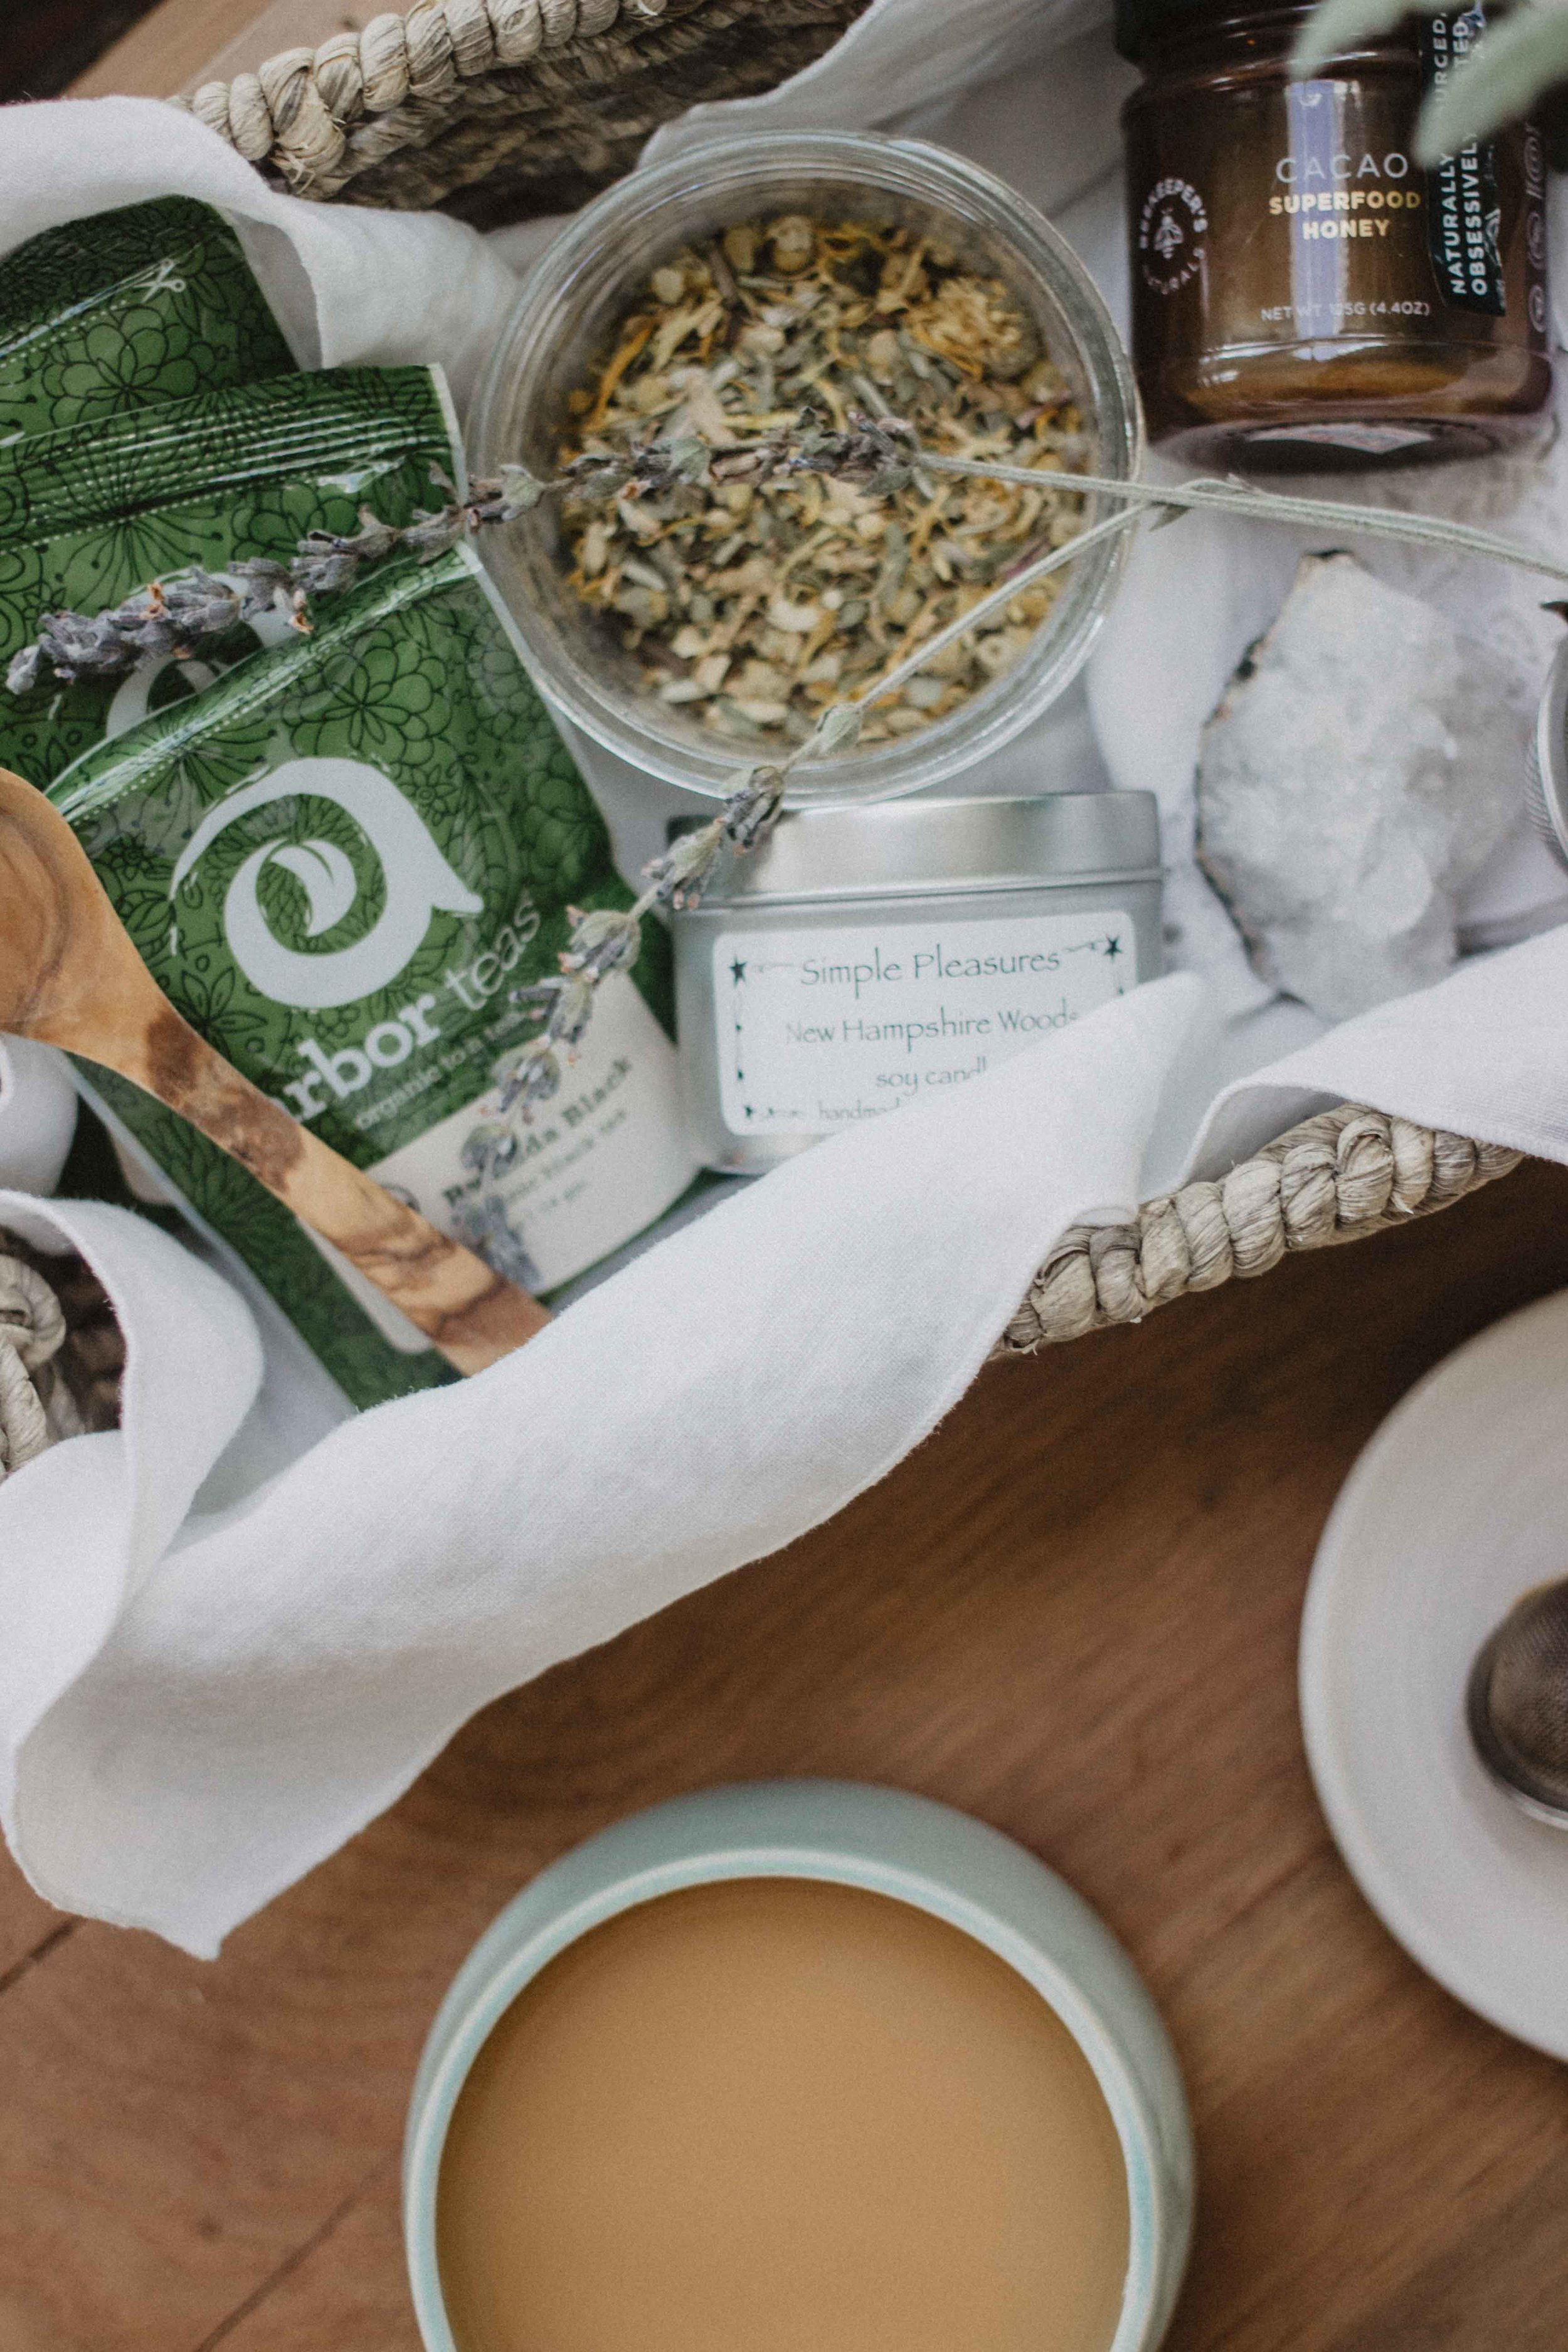 How To Give The Perfect Gift Every Single Time - The Well Essentials #gifts #ecofriendly #sustainable